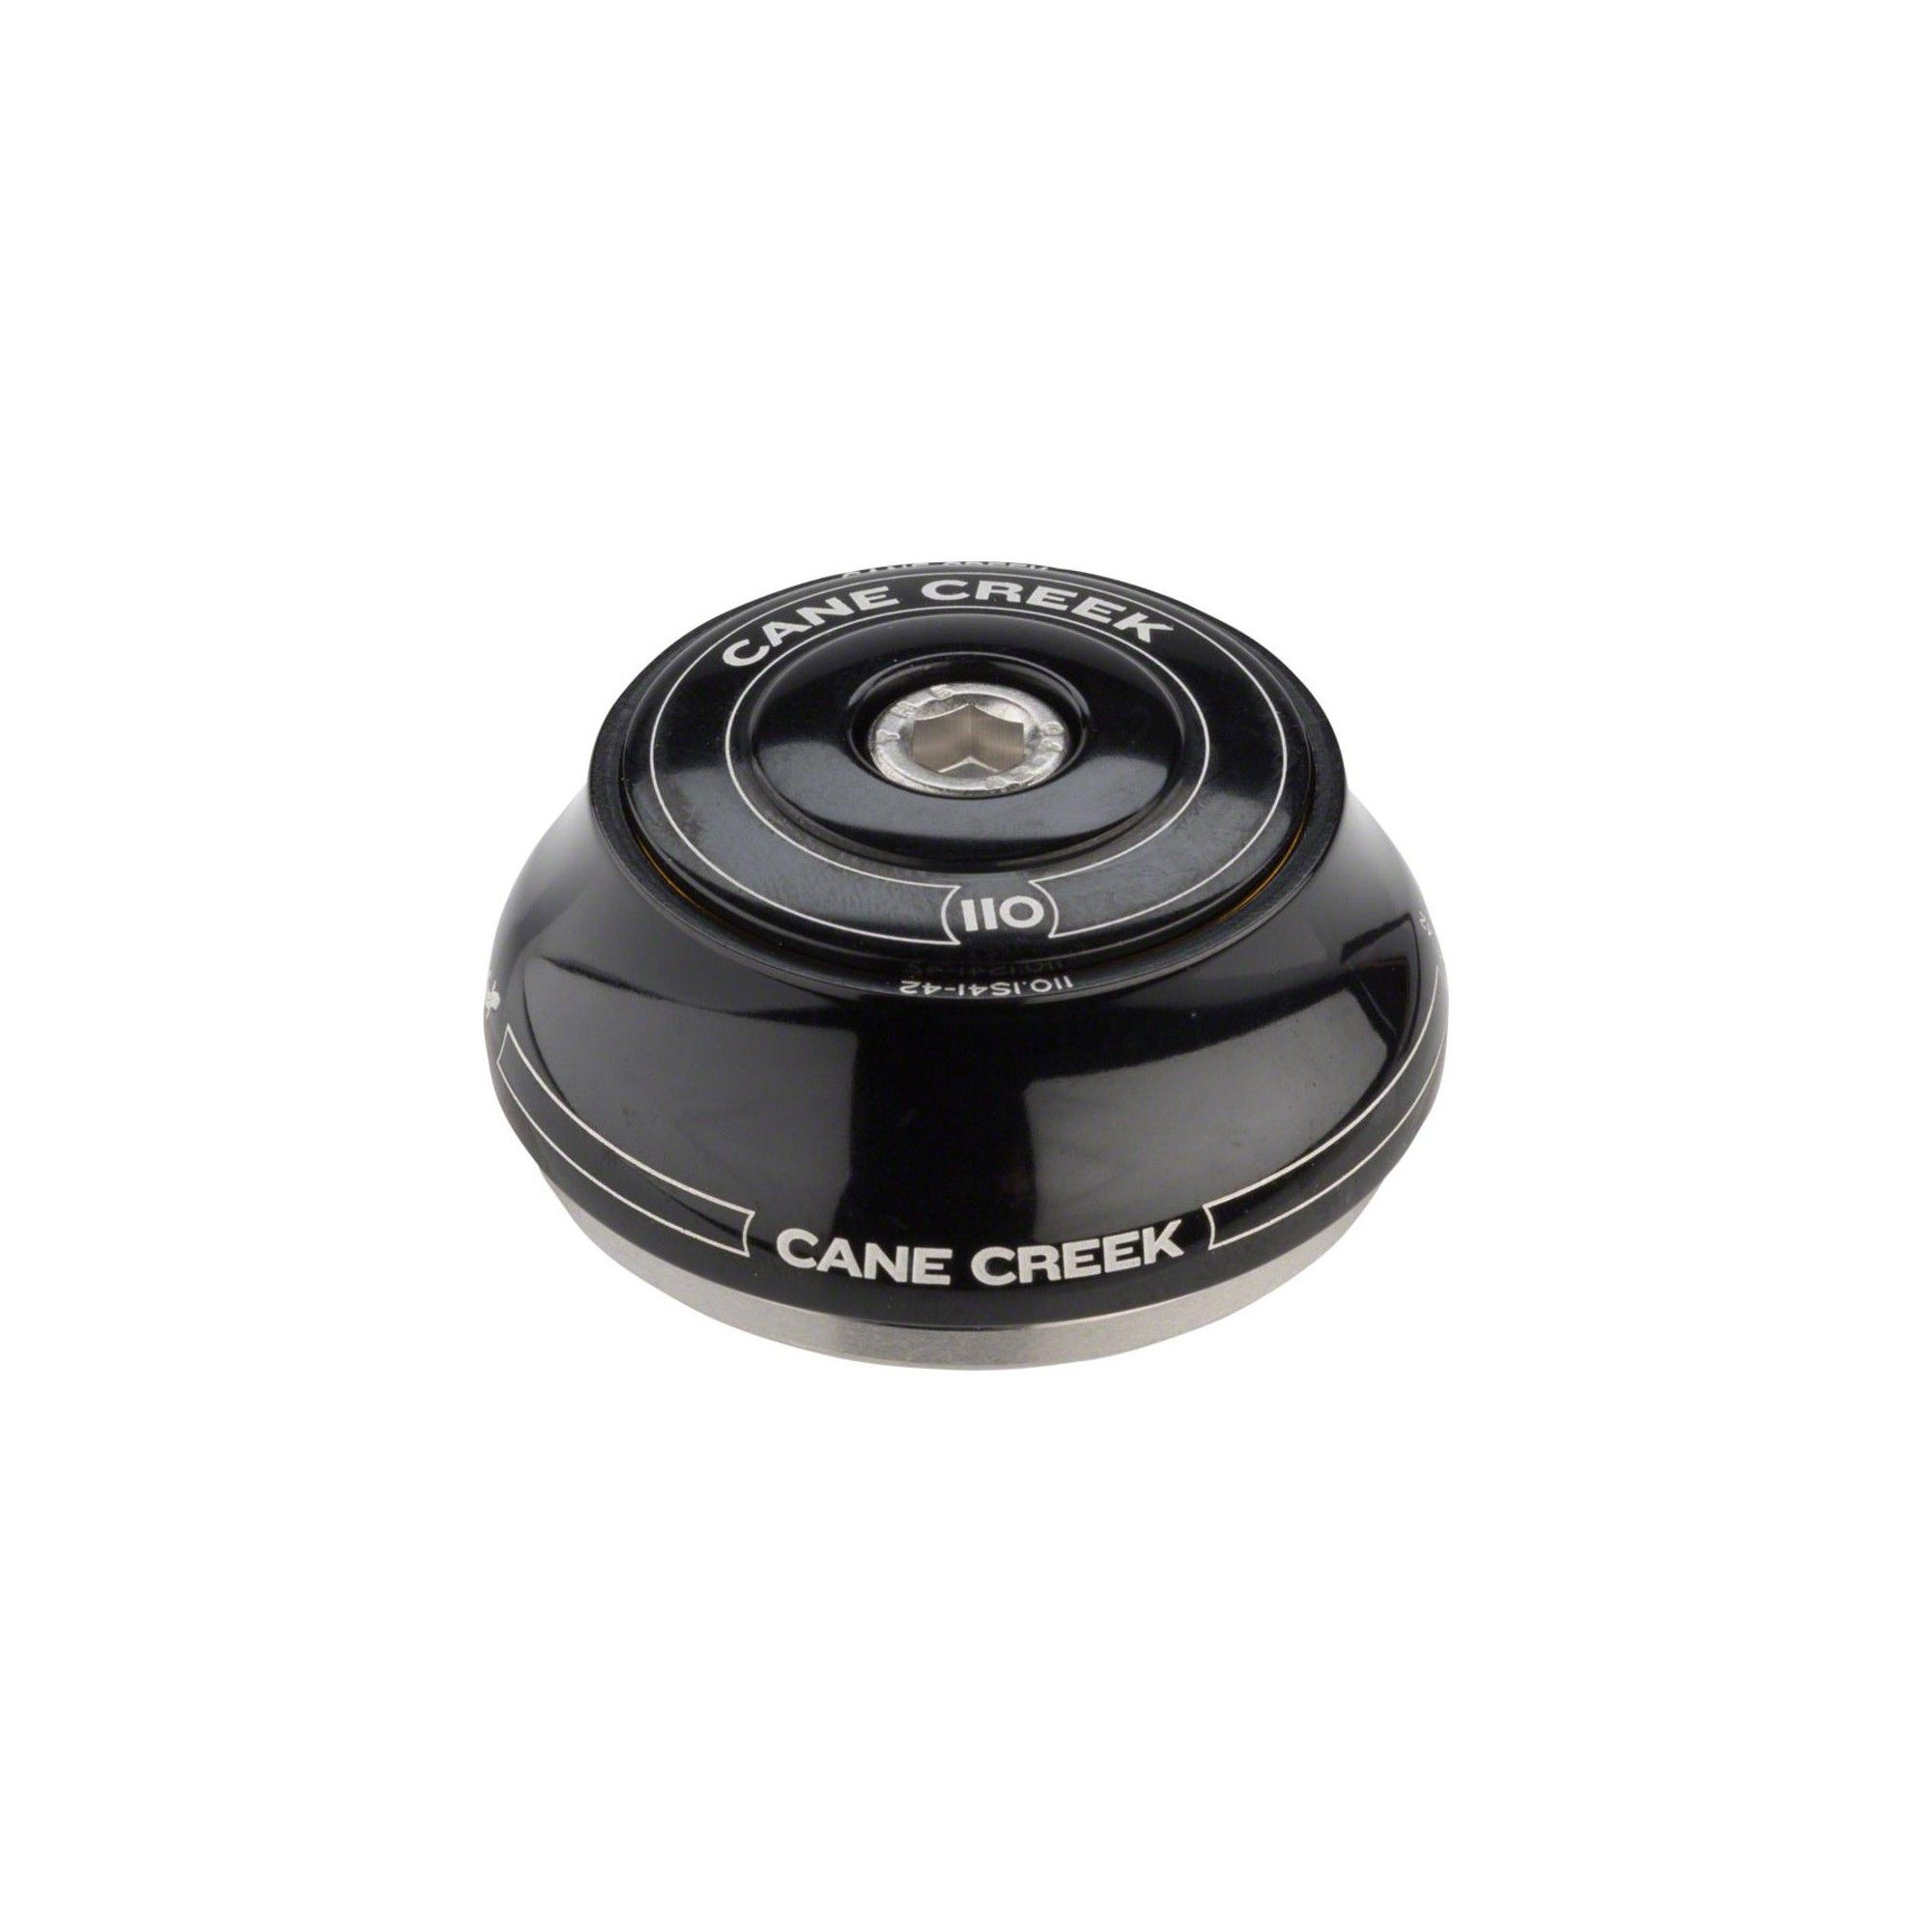 New Cane Creek 110 IS42//28.6 Tall Cover Top Headest Black